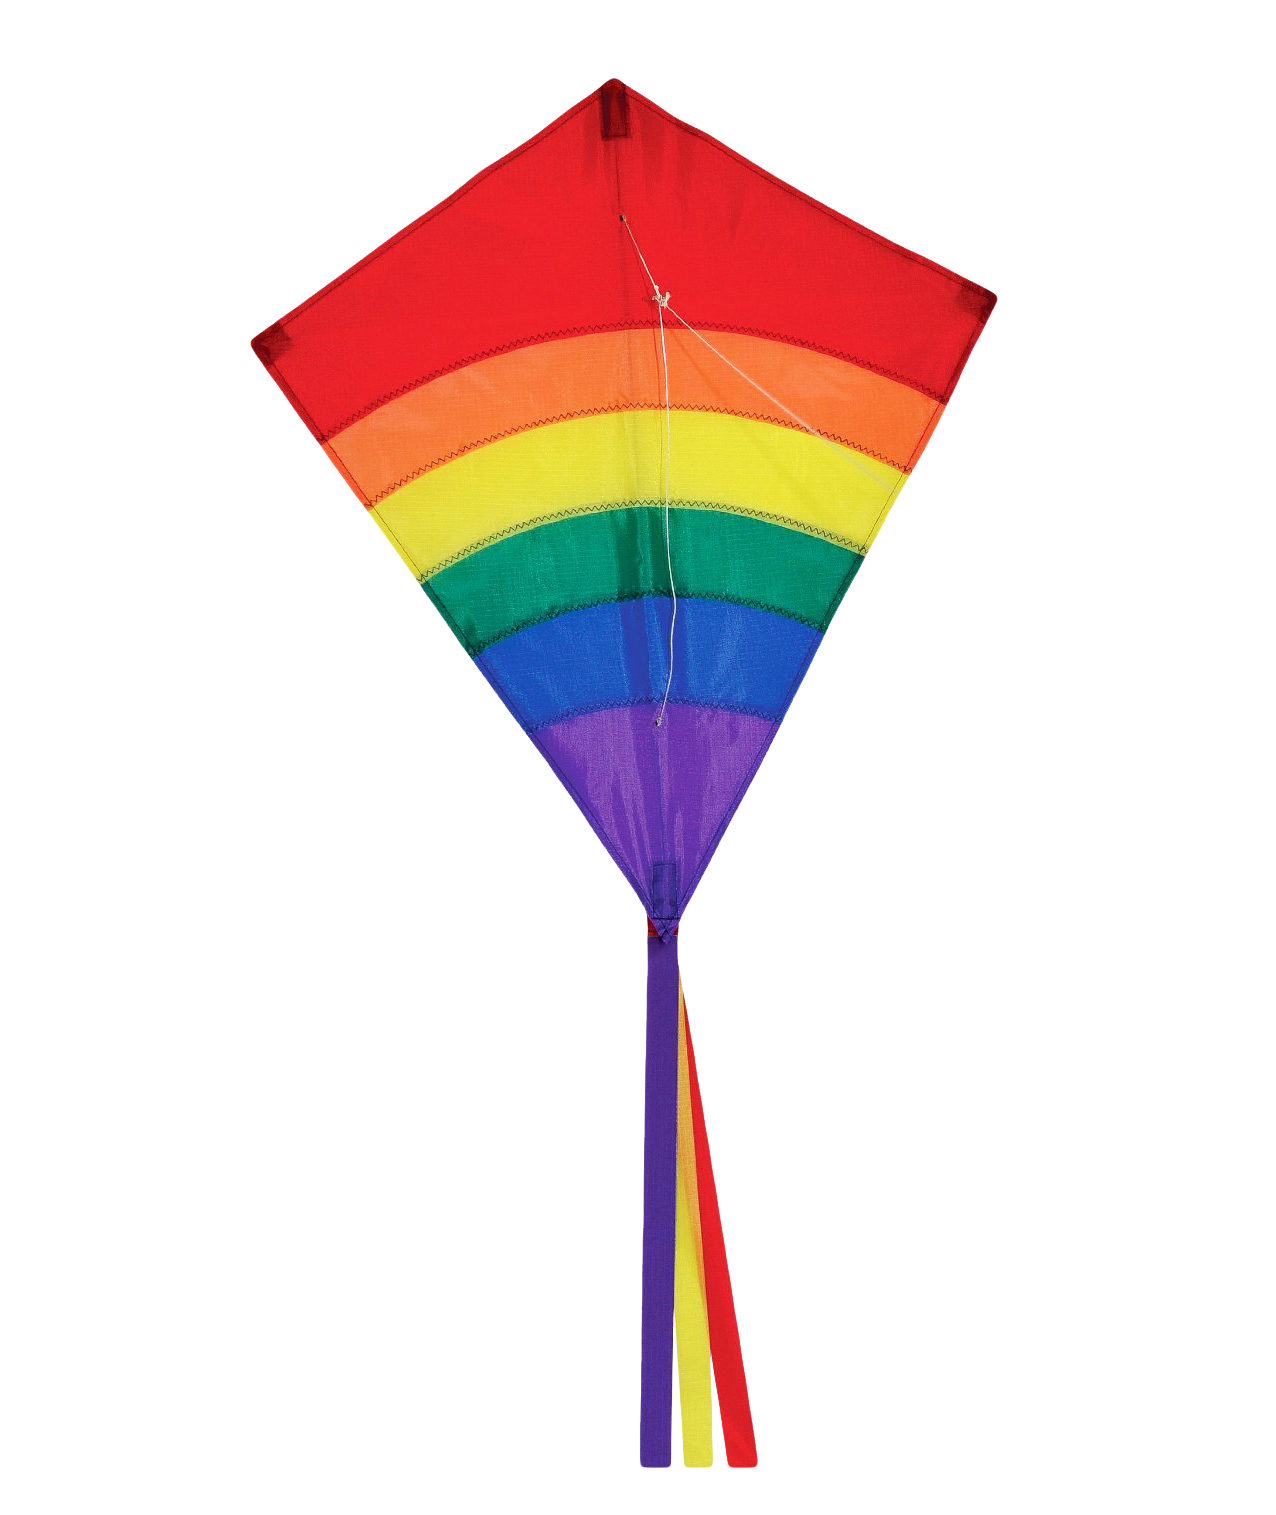 Kite PNG HD Images - 138909